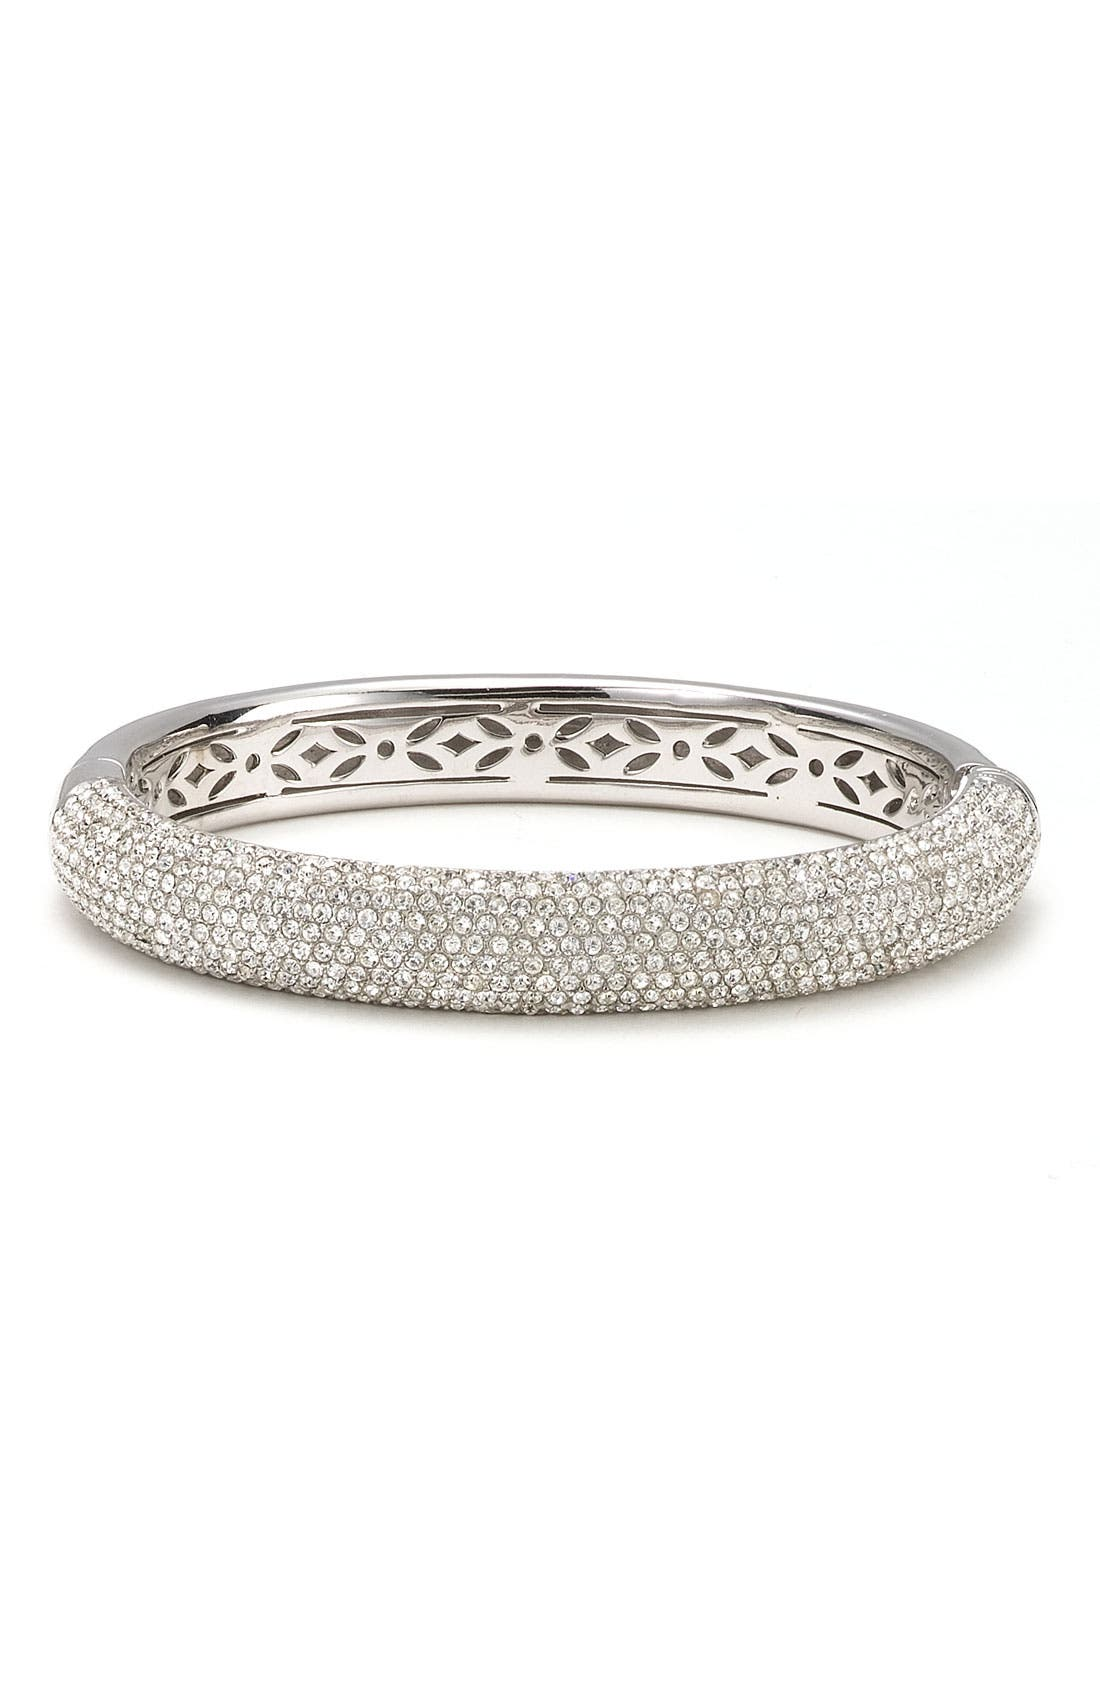 Main Image - Nadri 'Micro' Medium Pavé Crystal Bangle